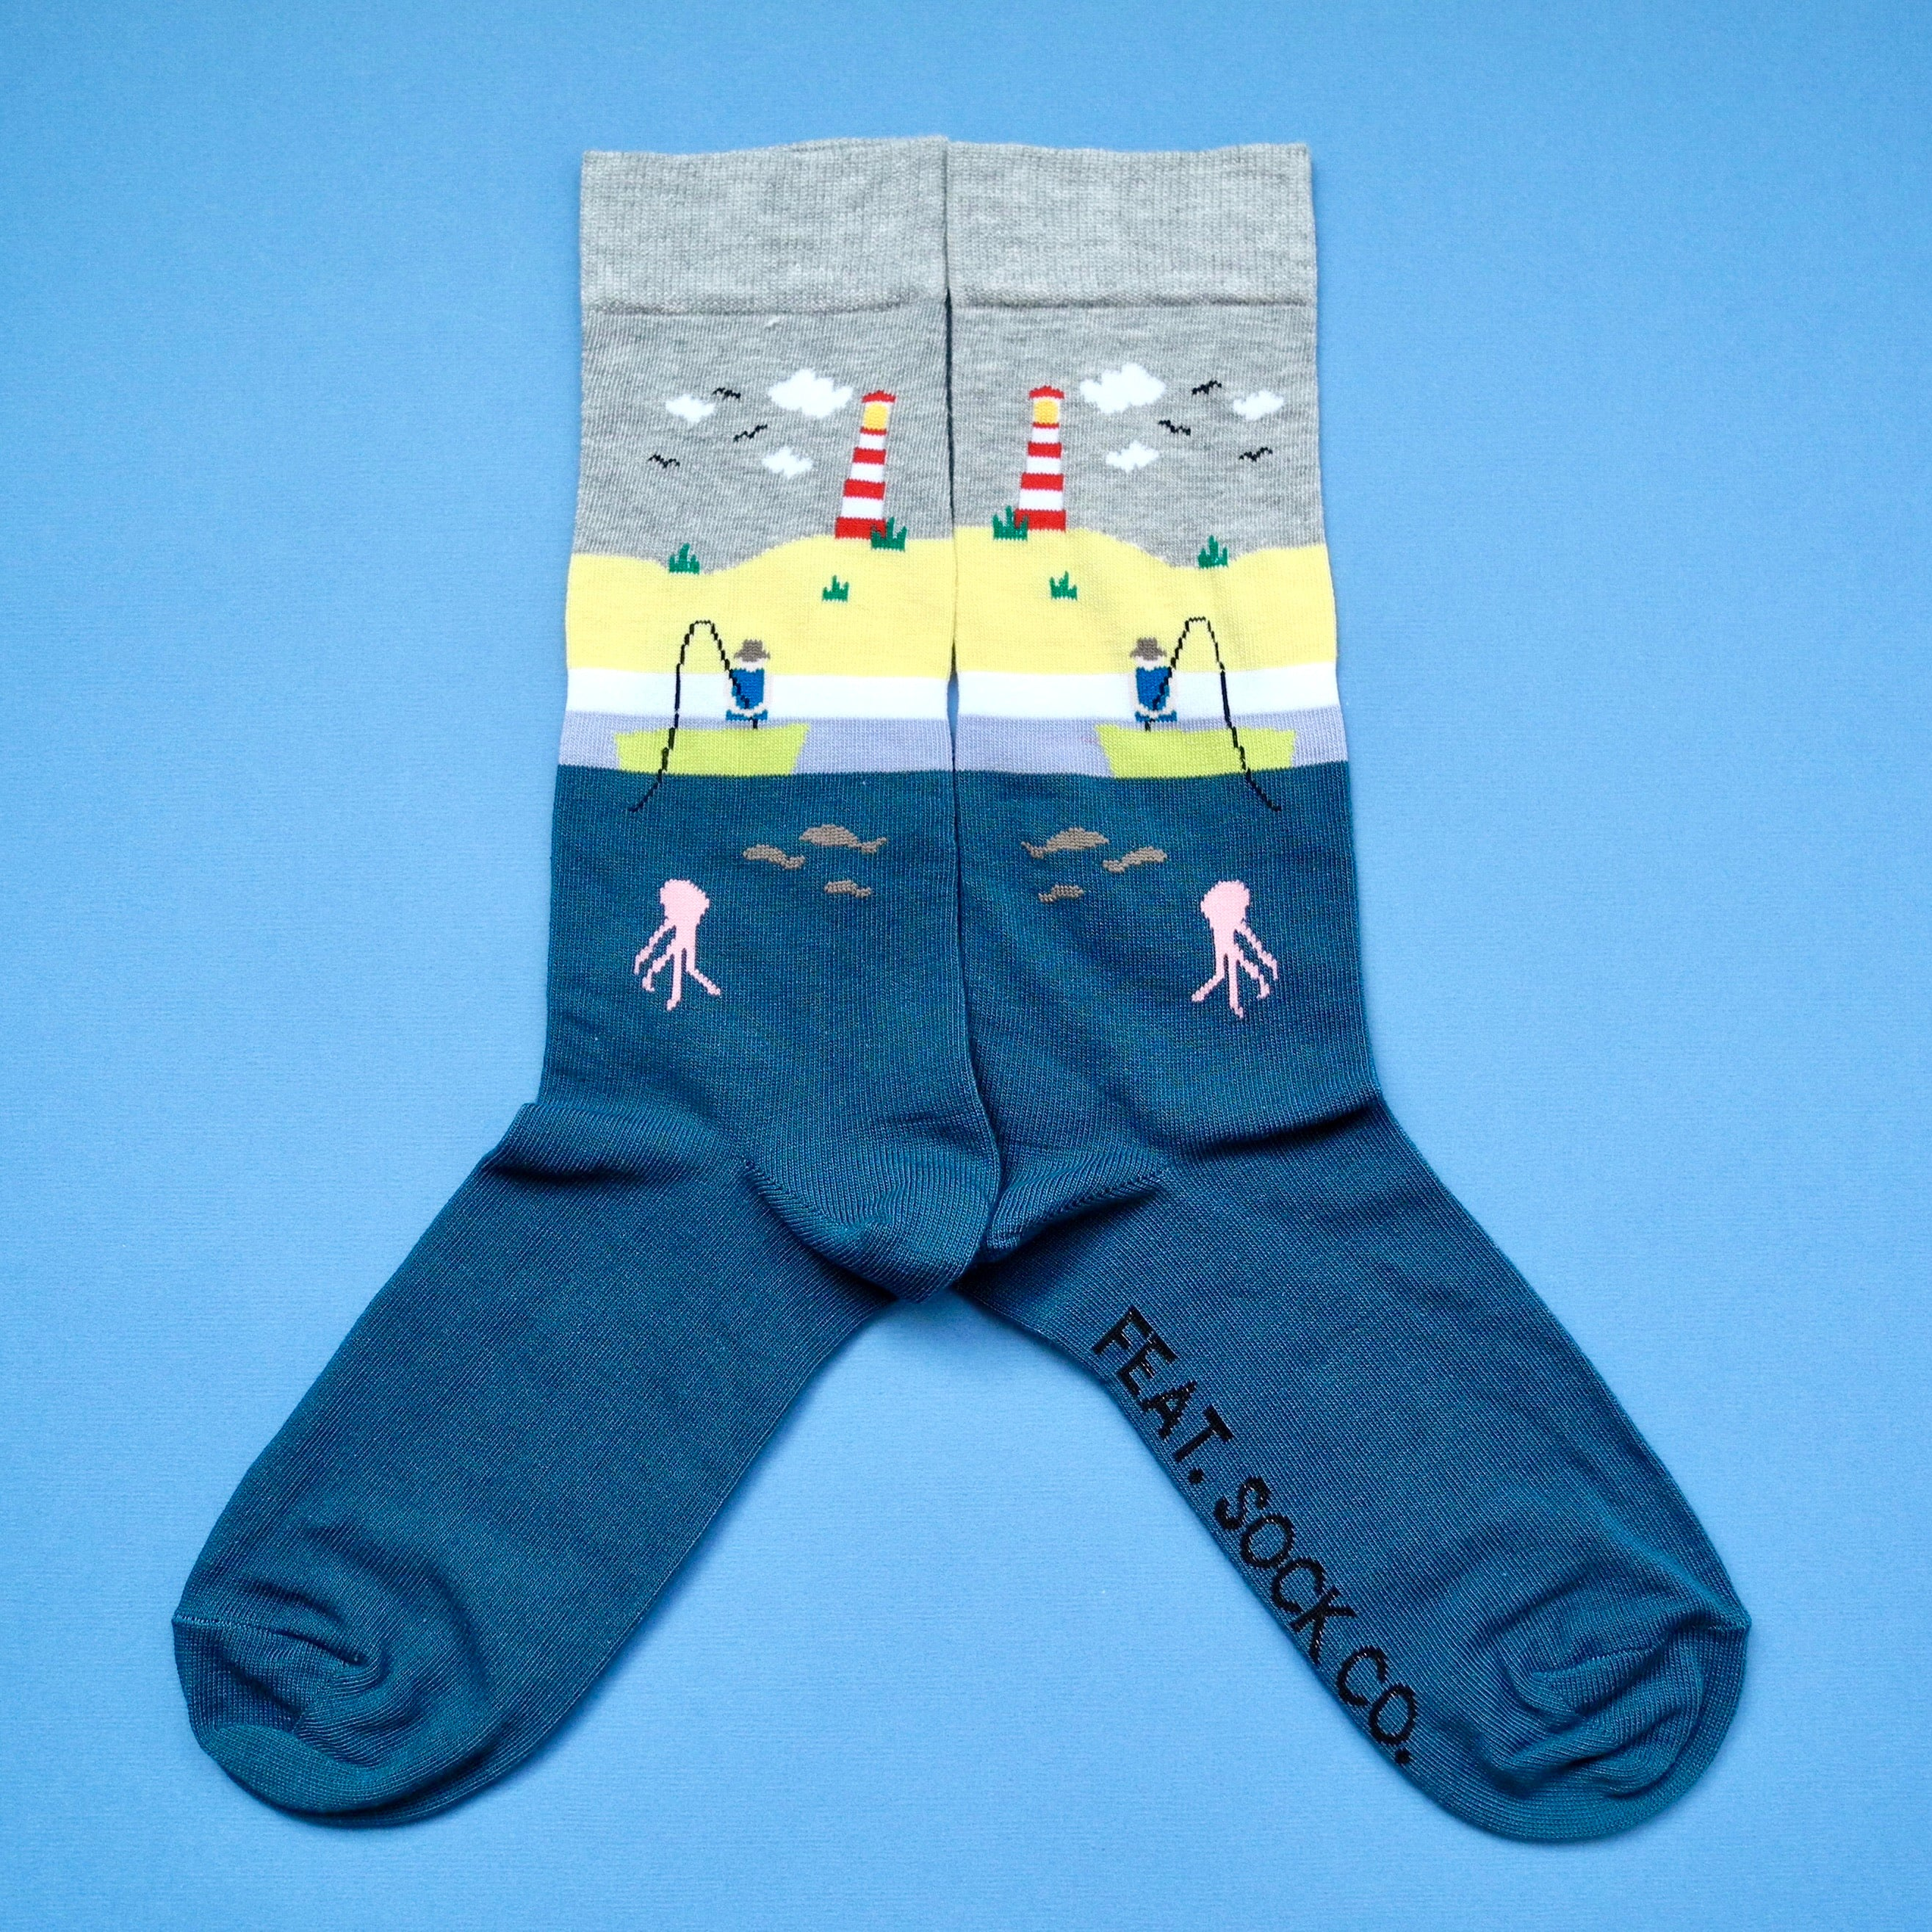 Men's Grey/Teal Fishing socks